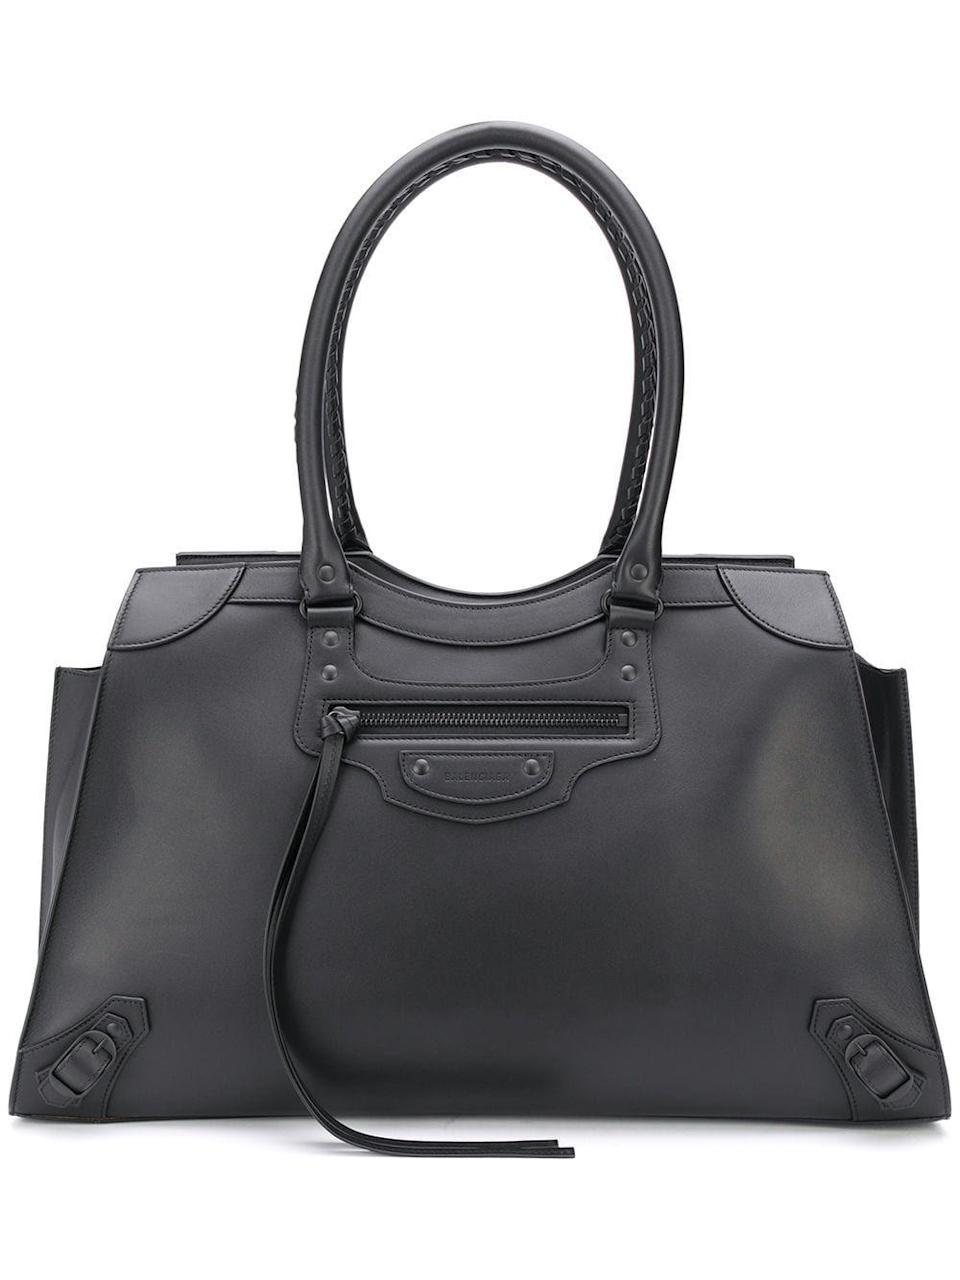 """<p><strong>Balenciaga</strong></p><p>farfetch.com</p><p><strong>$2990.00</strong></p><p><a href=""""https://go.redirectingat.com?id=74968X1596630&url=https%3A%2F%2Fwww.farfetch.com%2Fshopping%2Fwomen%2Fbalenciaga-neo-classic-large-top-handle-tote-bag-item-15659854.aspx&sref=https%3A%2F%2Fwww.harpersbazaar.com%2Ffashion%2Ftrends%2Fg22591832%2Fbest-laptop-bags-for-women%2F"""" rel=""""nofollow noopener"""" target=""""_blank"""" data-ylk=""""slk:Shop Now"""" class=""""link rapid-noclick-resp"""">Shop Now</a></p><p>This one is ideal for weekends away, too. </p>"""